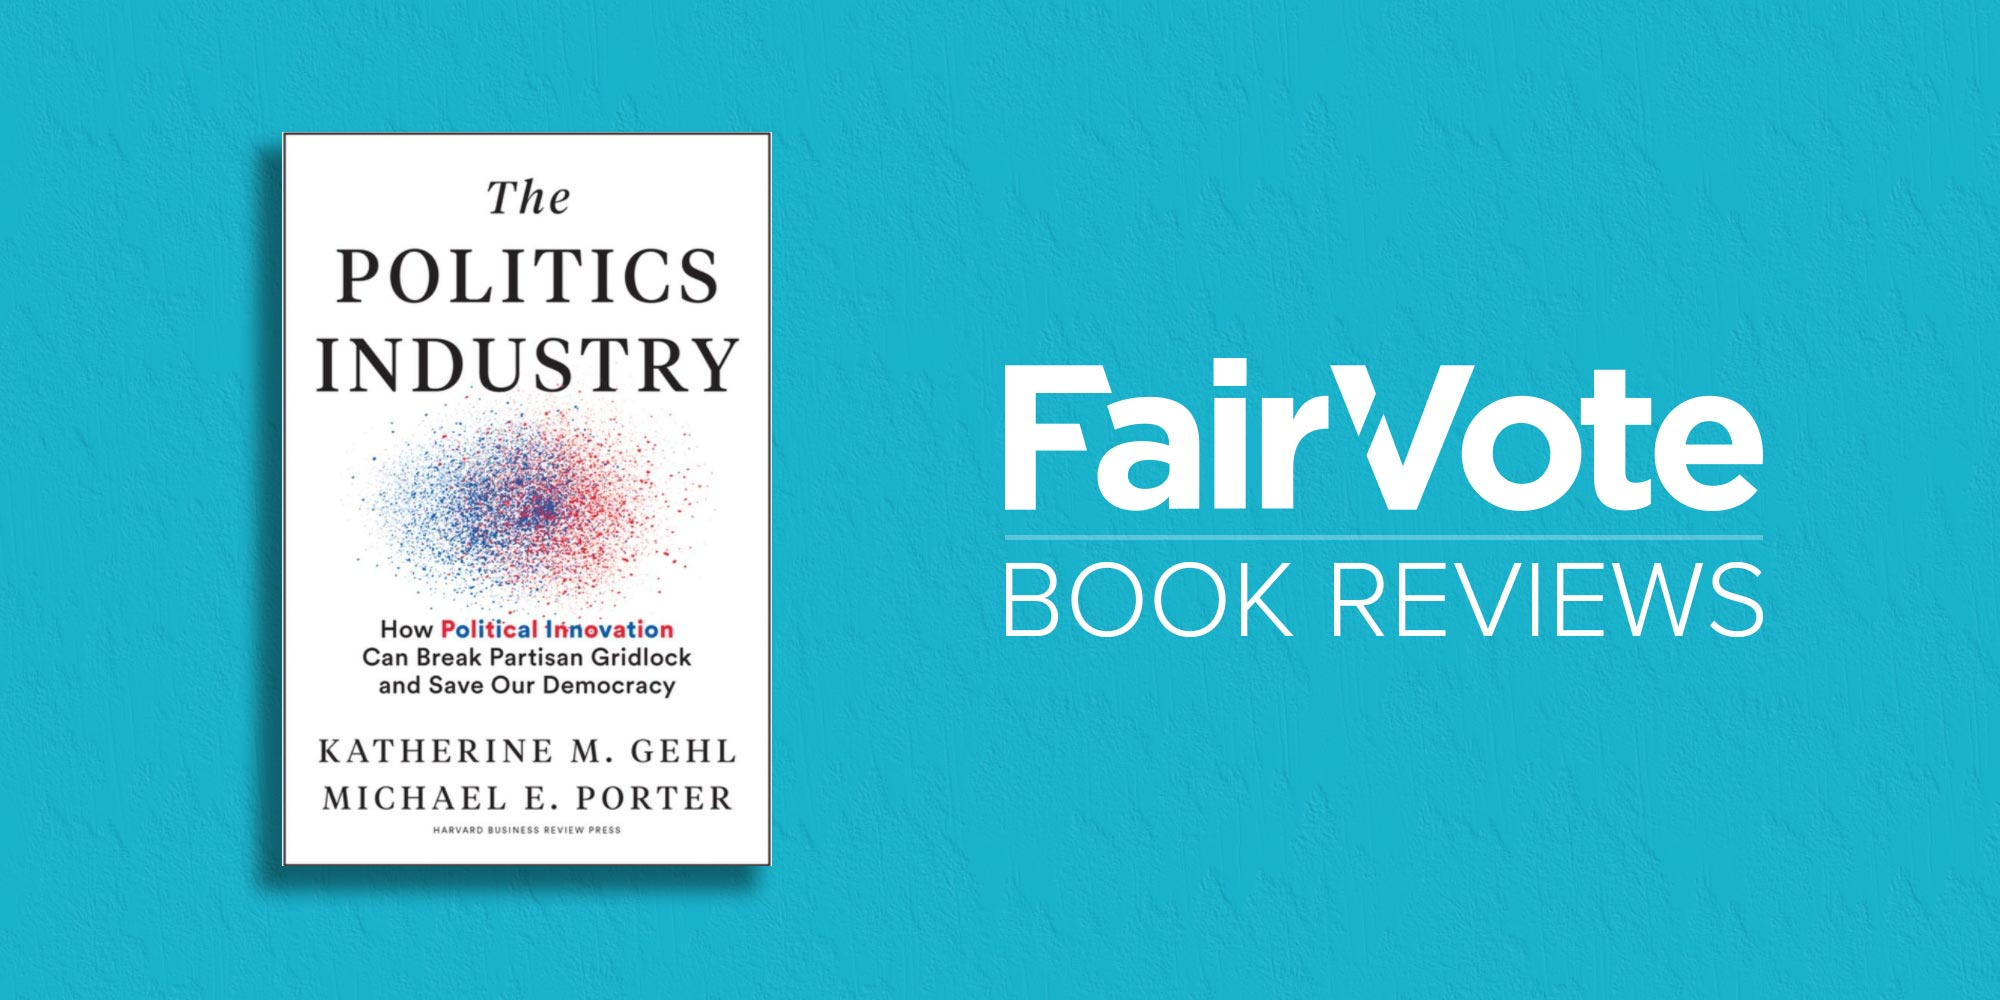 The Politics Industry: Reformers Highlight RCV in New Book